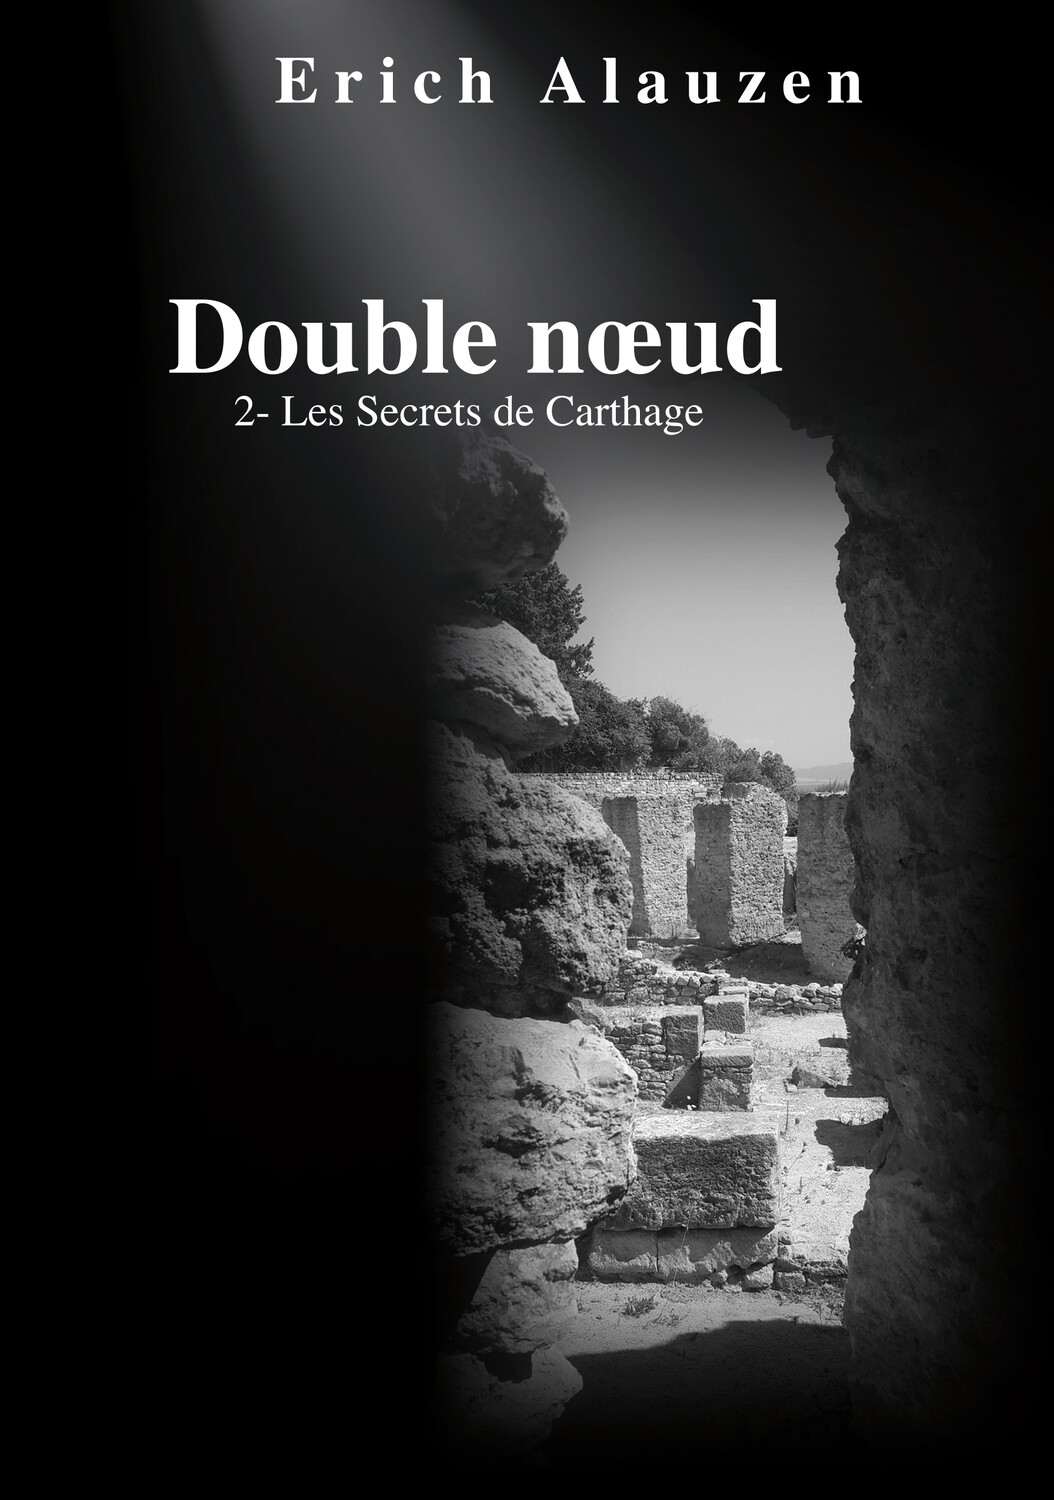 Double noeud 2- Les Secrets de Carthage  par Erich ALAUZEN - Version imprimée